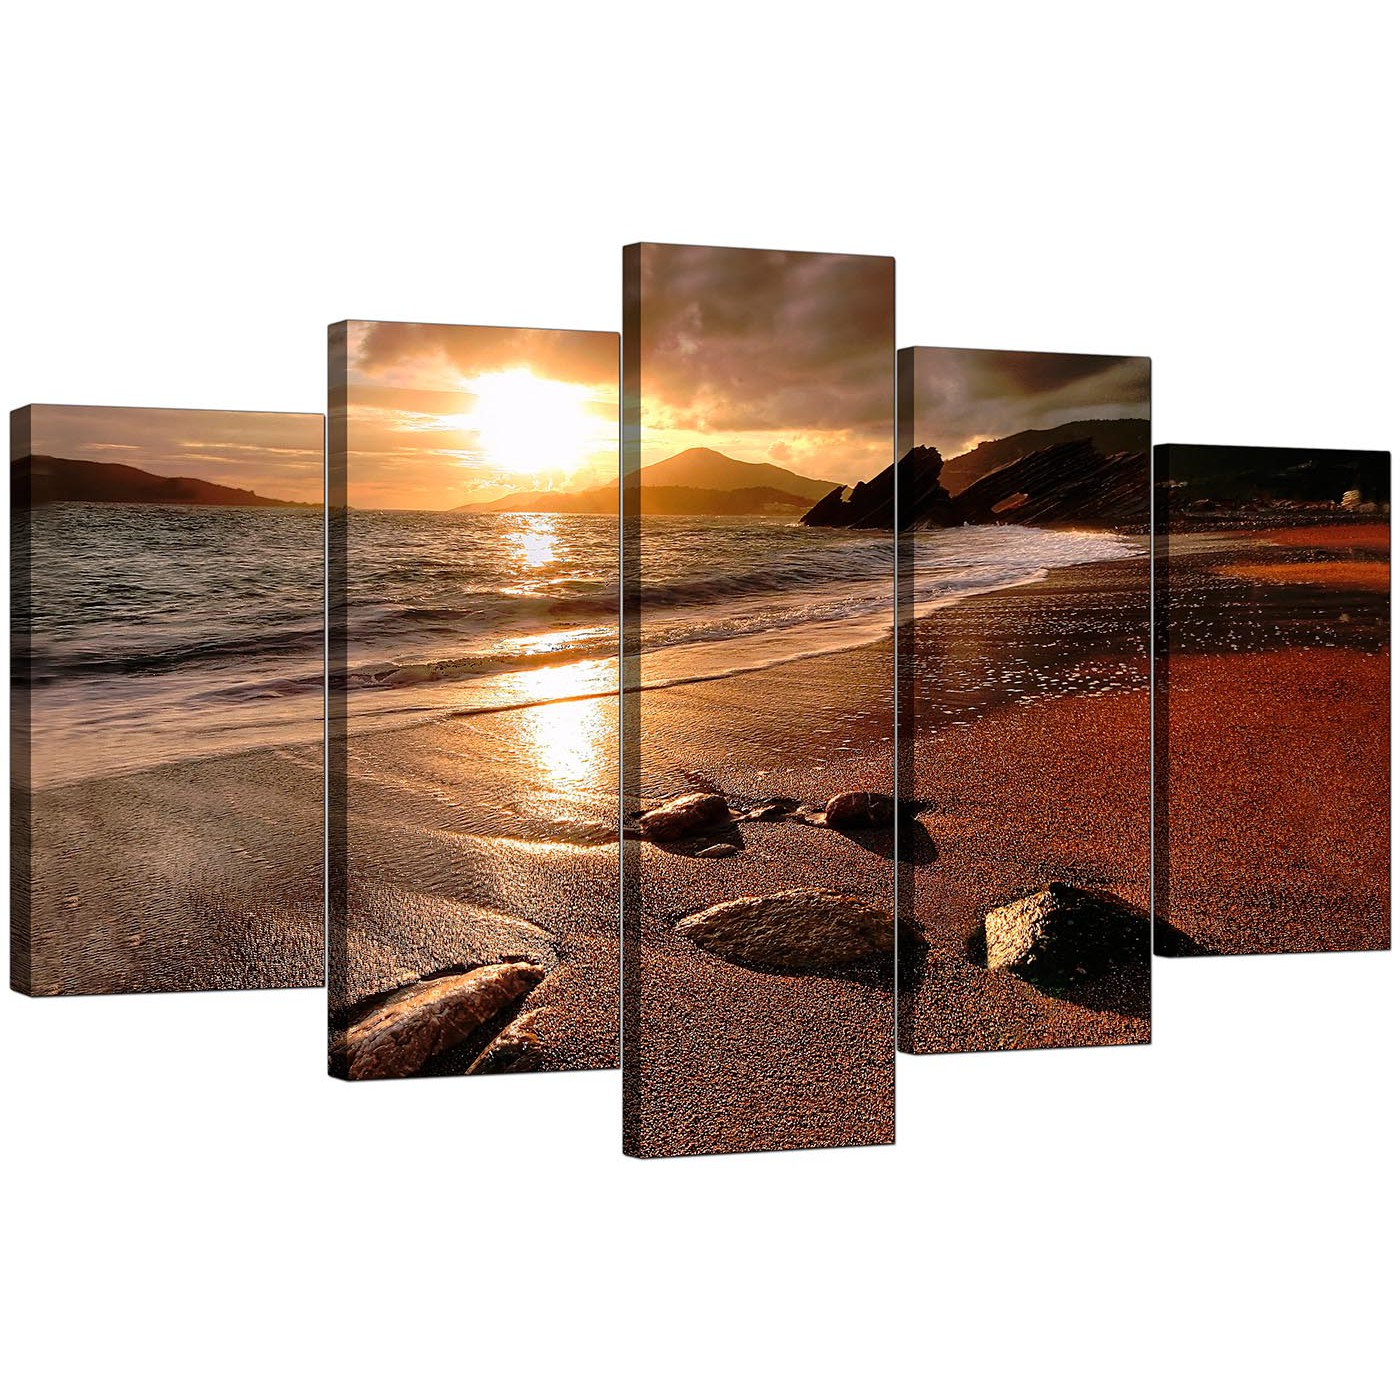 Five Panel Set Of Modern Brown Canvas Prints Display Gallery Item 1 ...